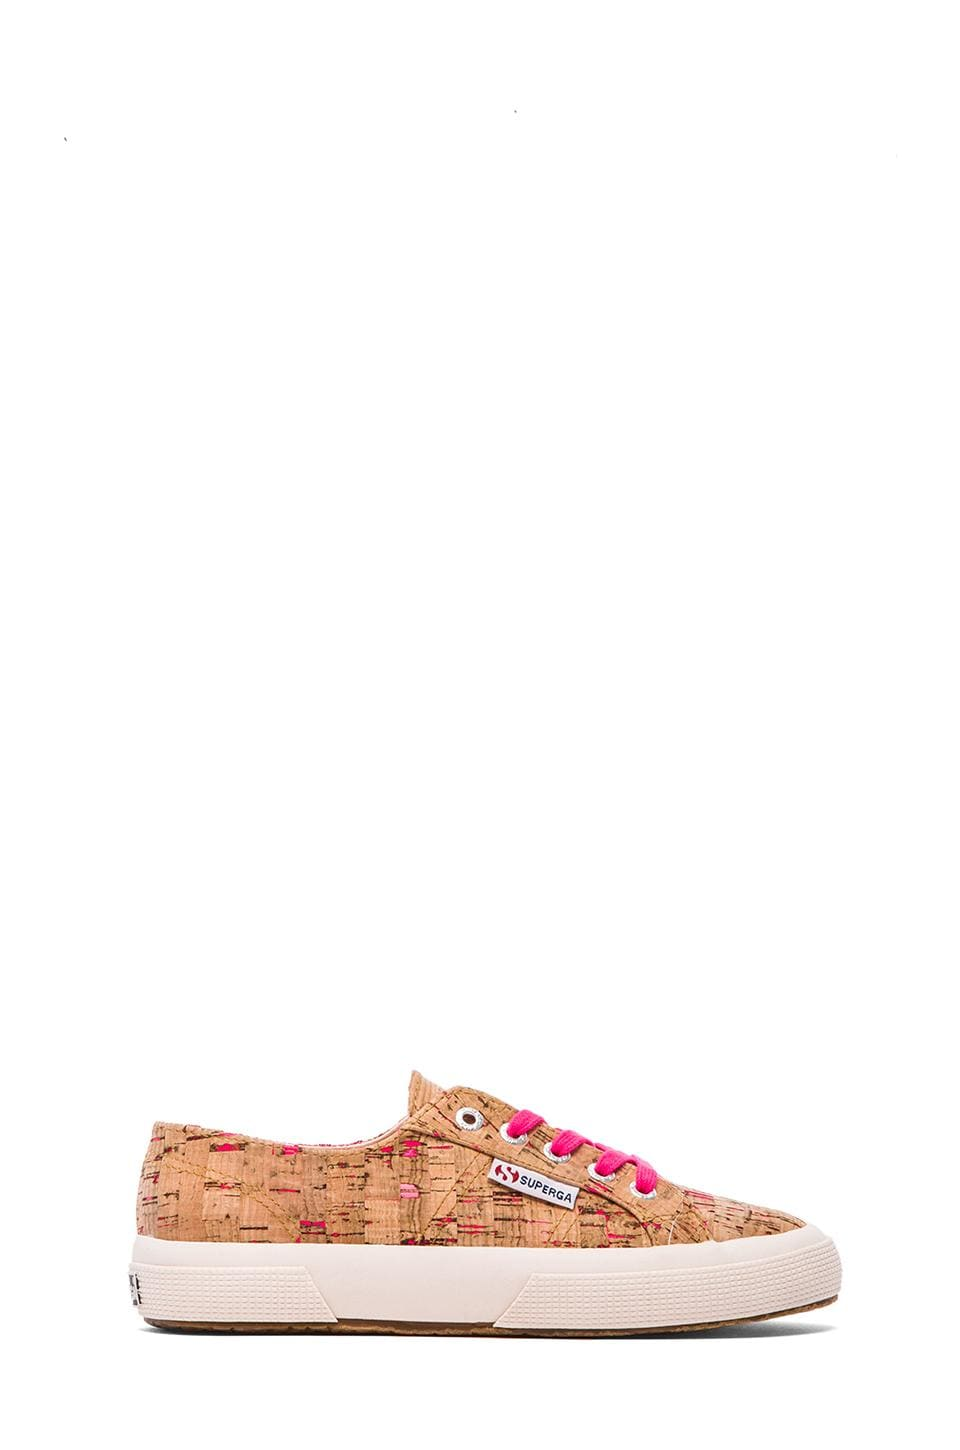 Superga Neon Cork Sneakers in Neon Pink